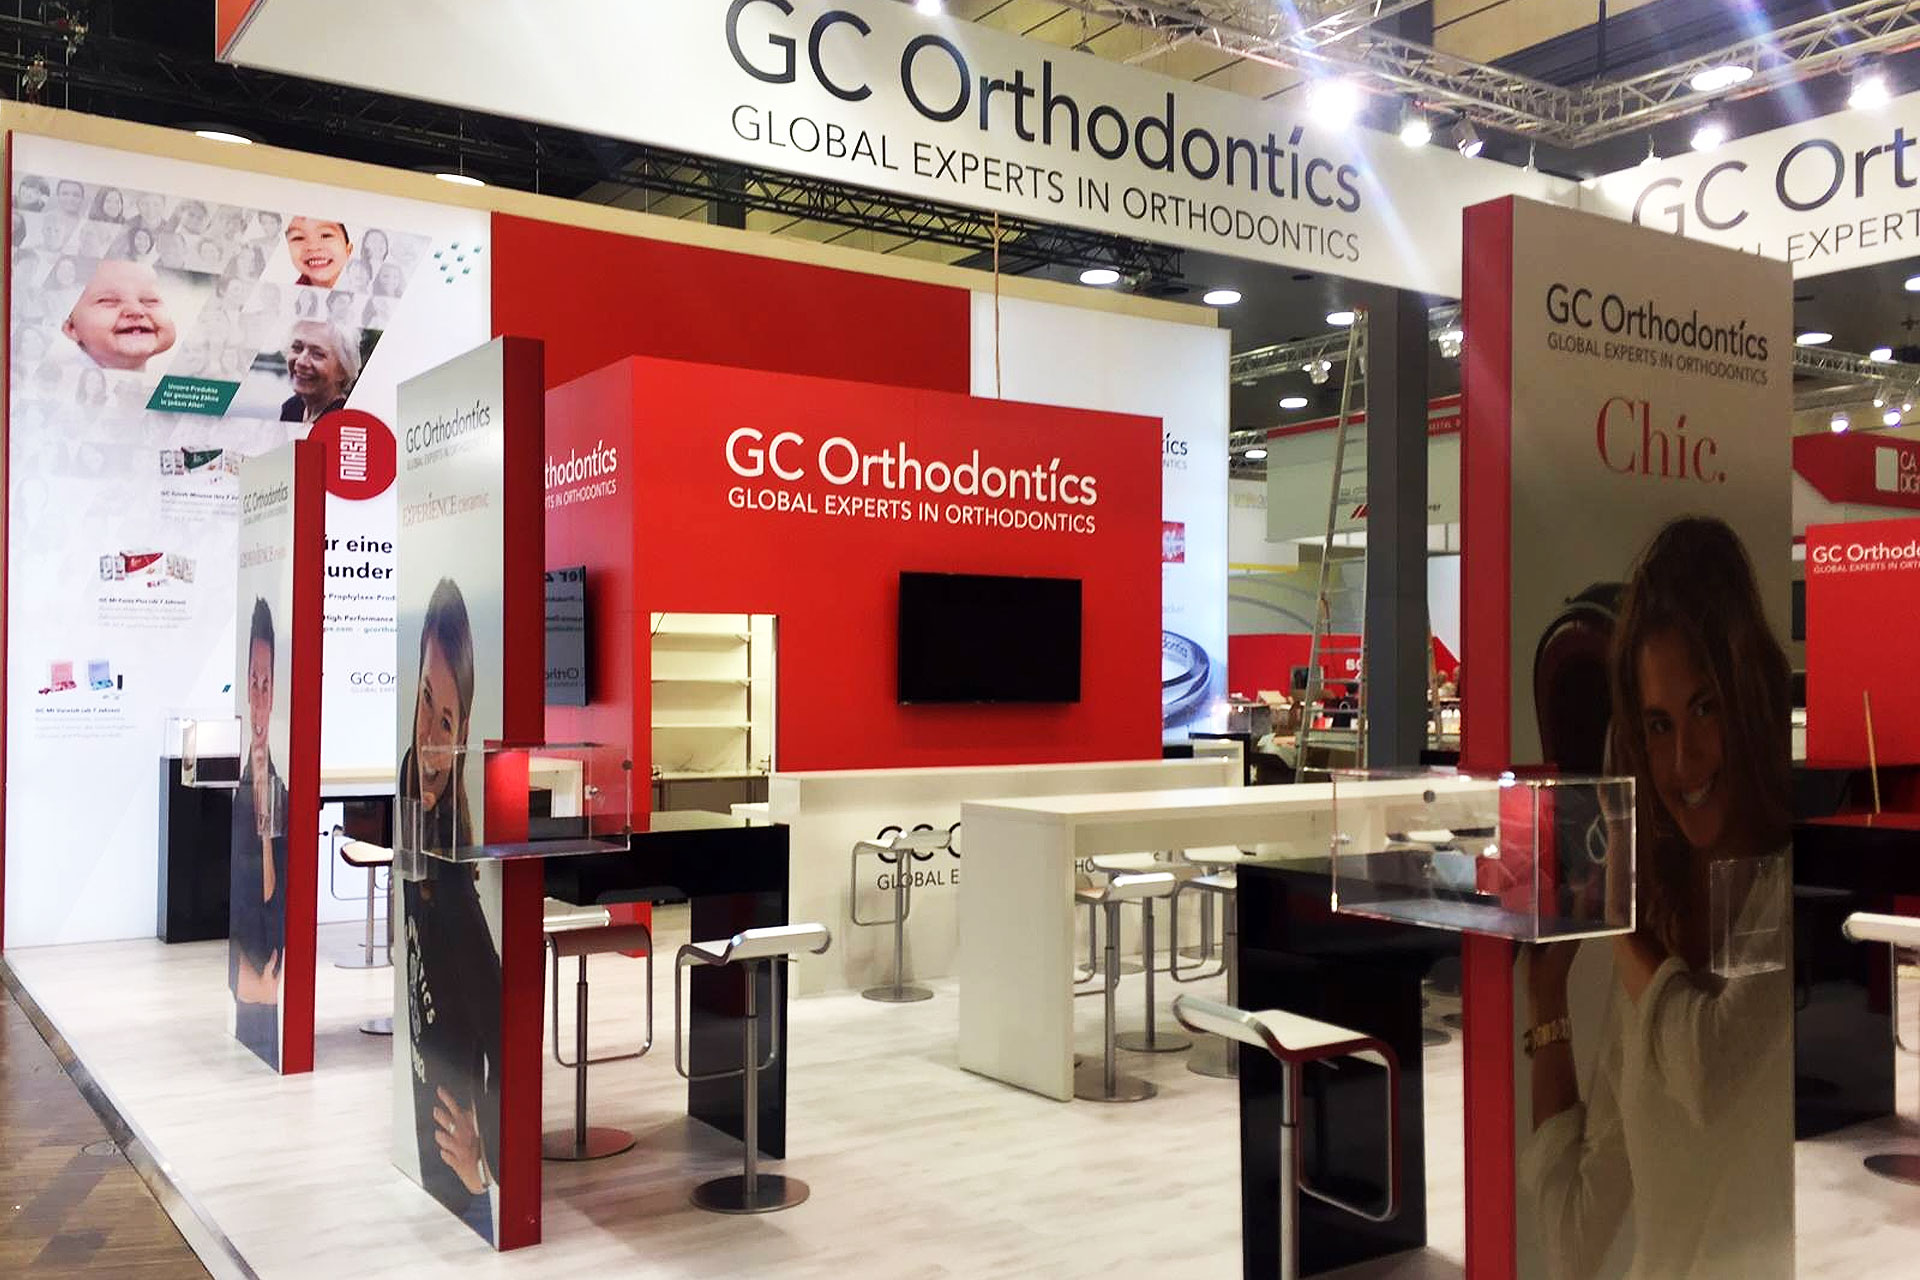 Messestand GC Orthodontics - DGKFO 2017 - Messebau CCKöln